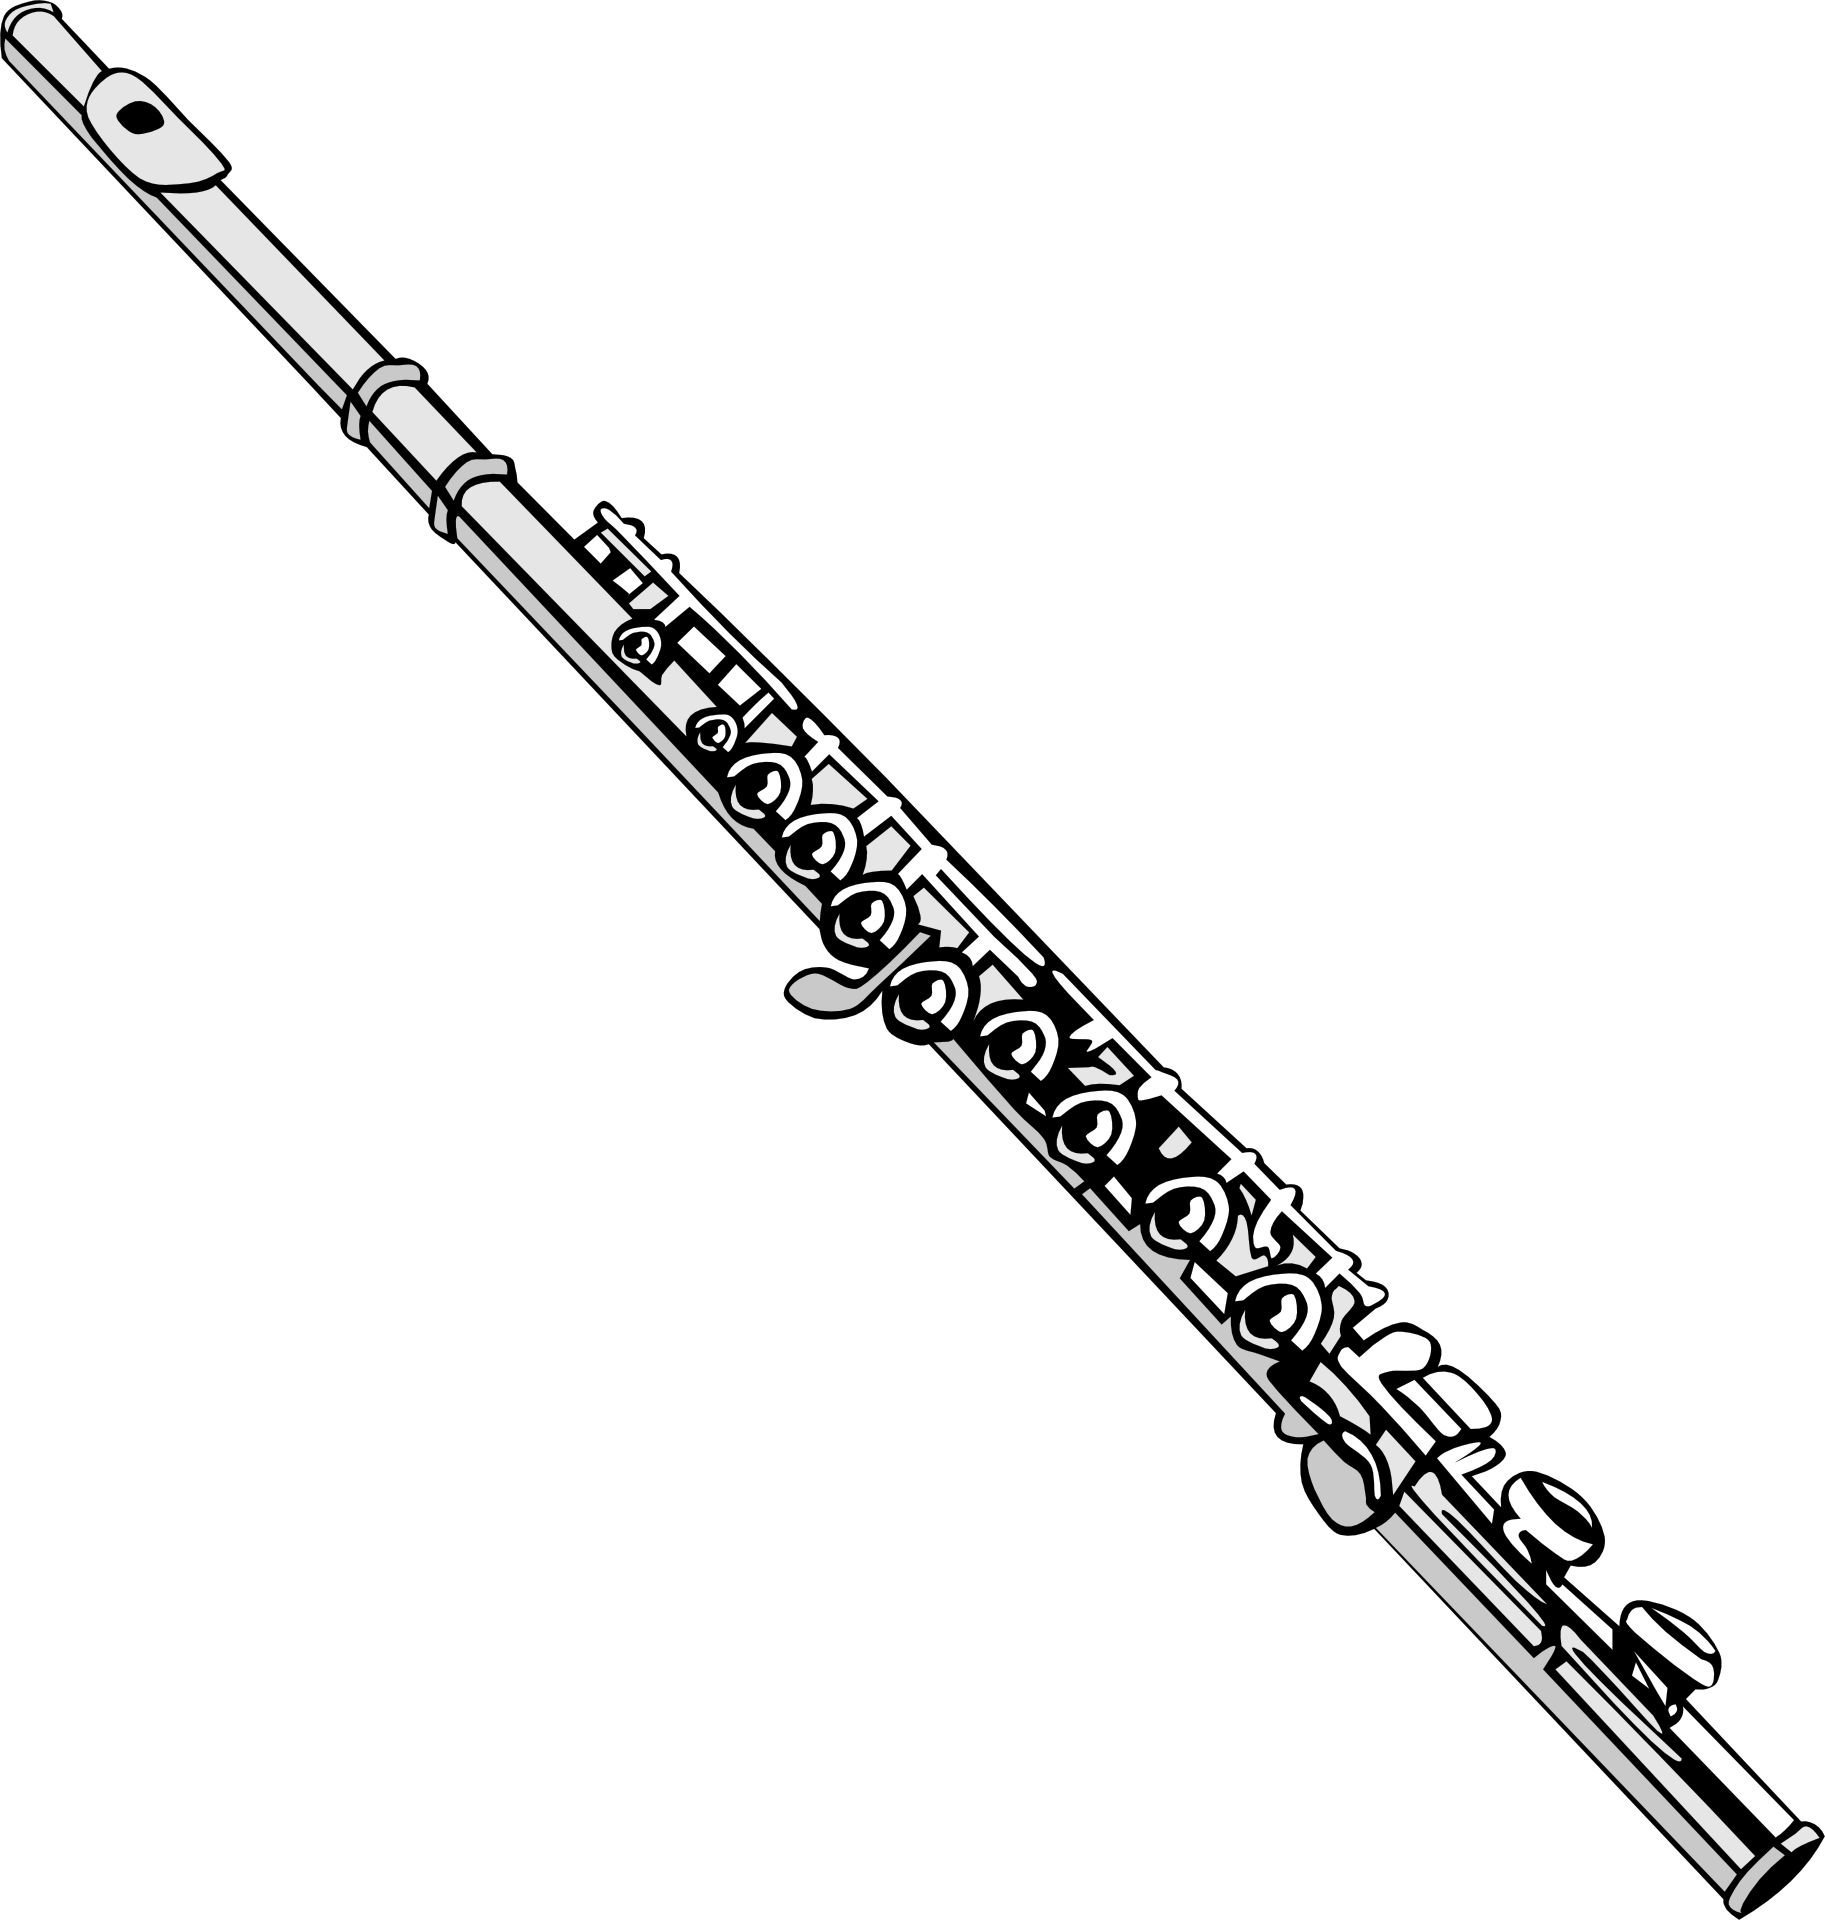 flute clipart black and white - HD1825×1920